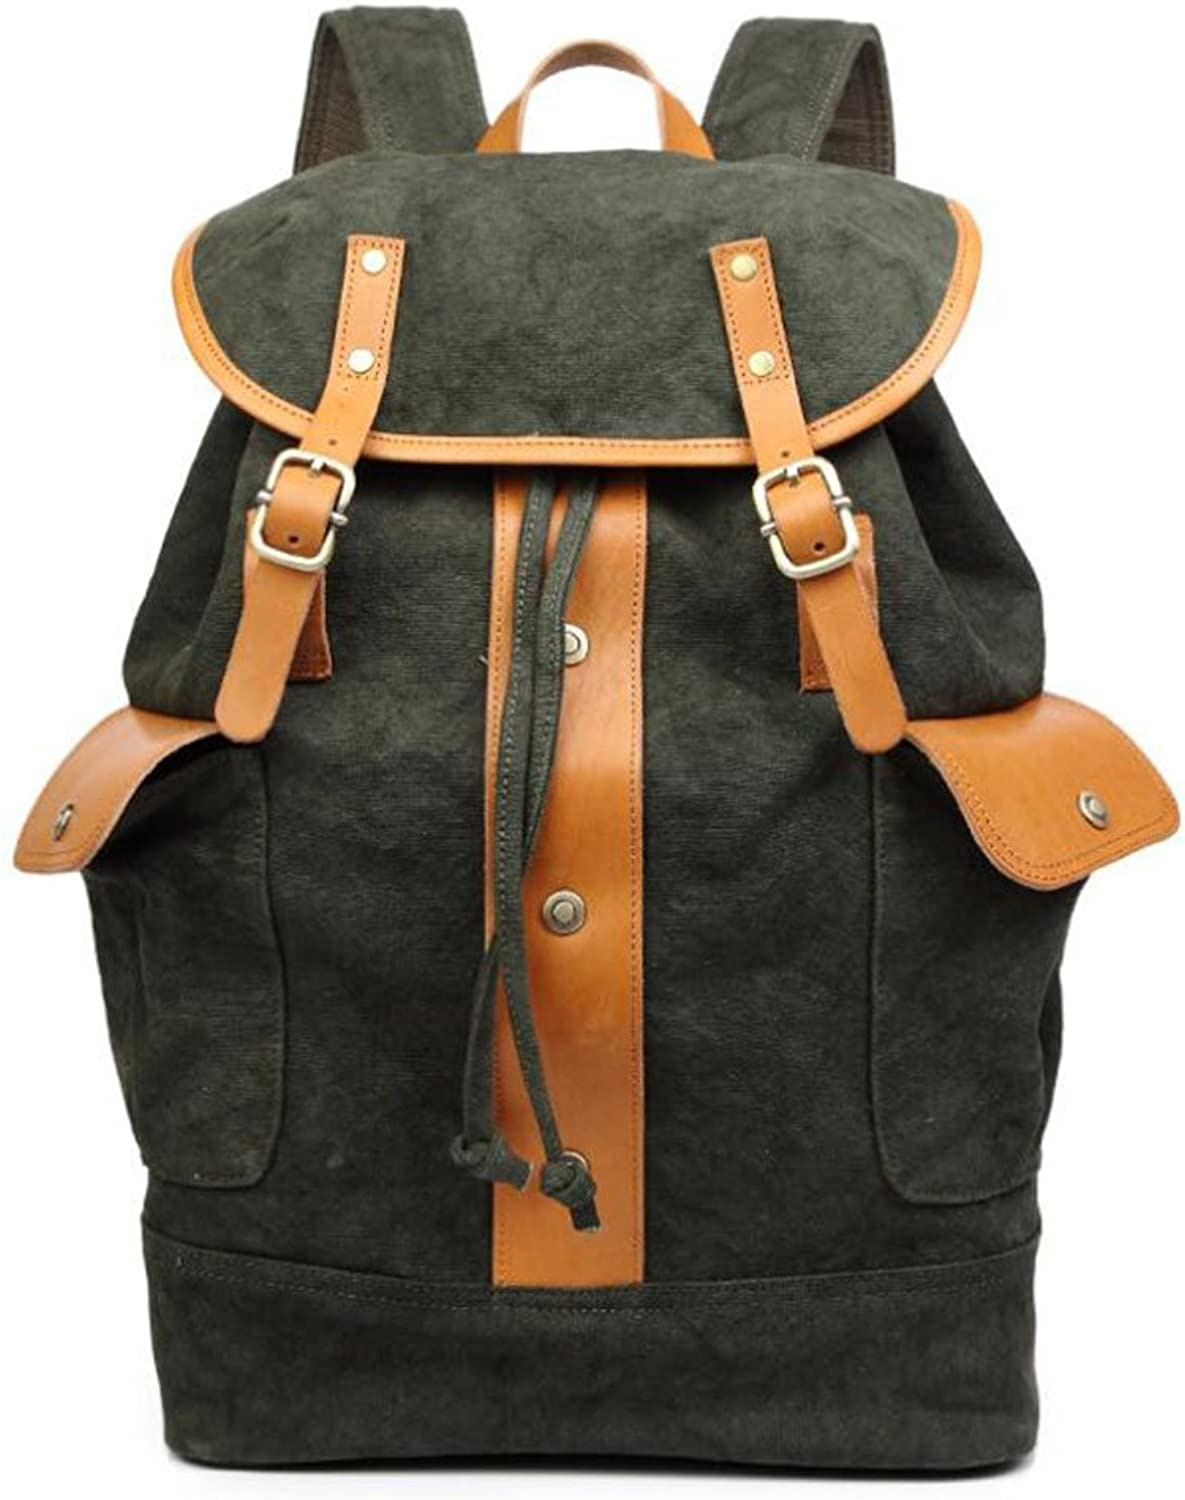 PPGE Canvas Fashion Casual Backpack For Men Satchel Rucksack Daypack Travel Bag Shoulder School Bag Schoolbag For 15.6 Inch Laptop,Darkgreen